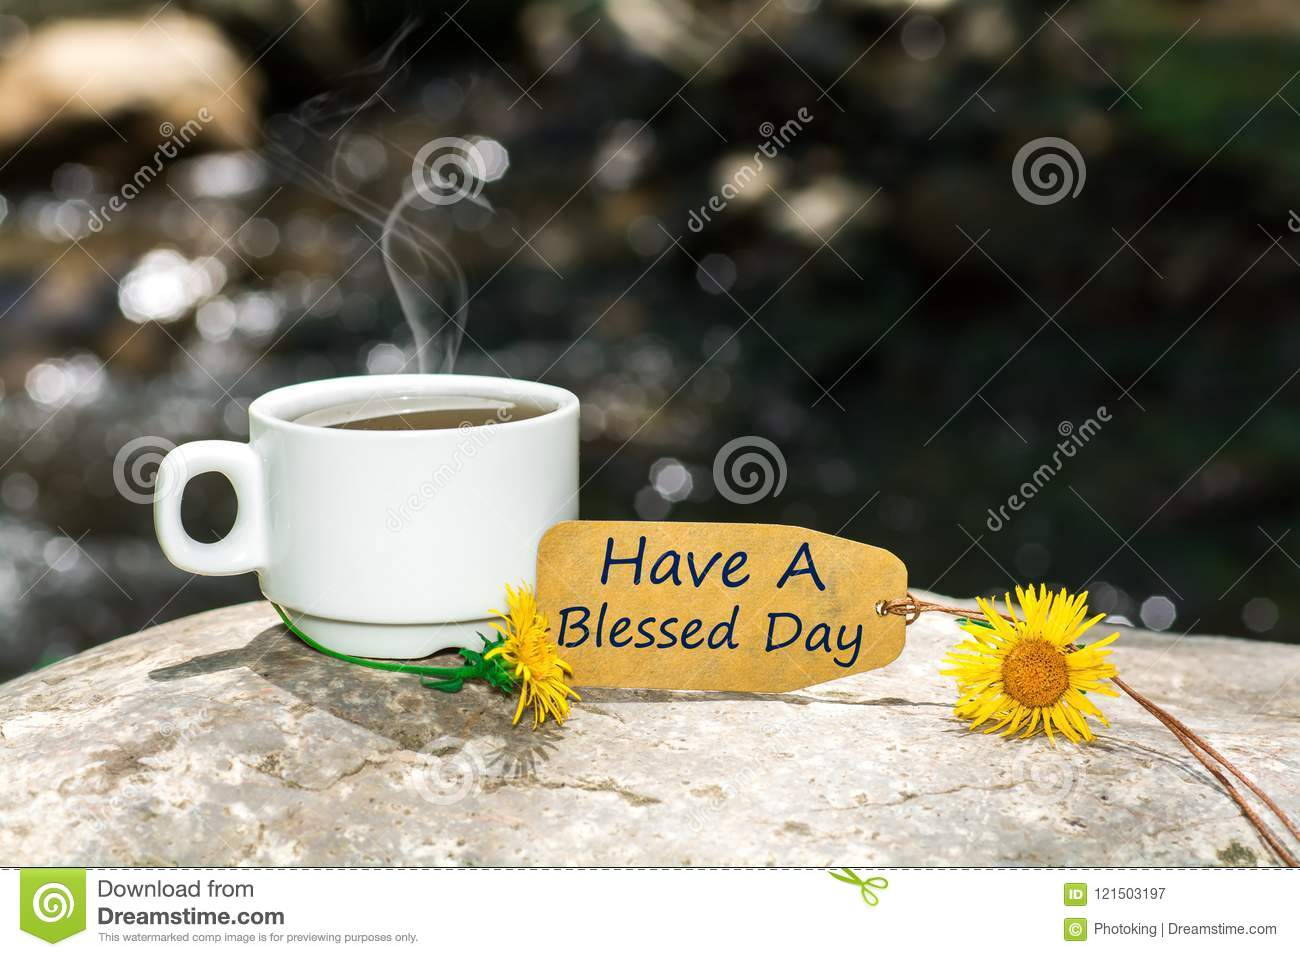 Have A Blessed Day Text With Coffee Cup Stock Image Image Of